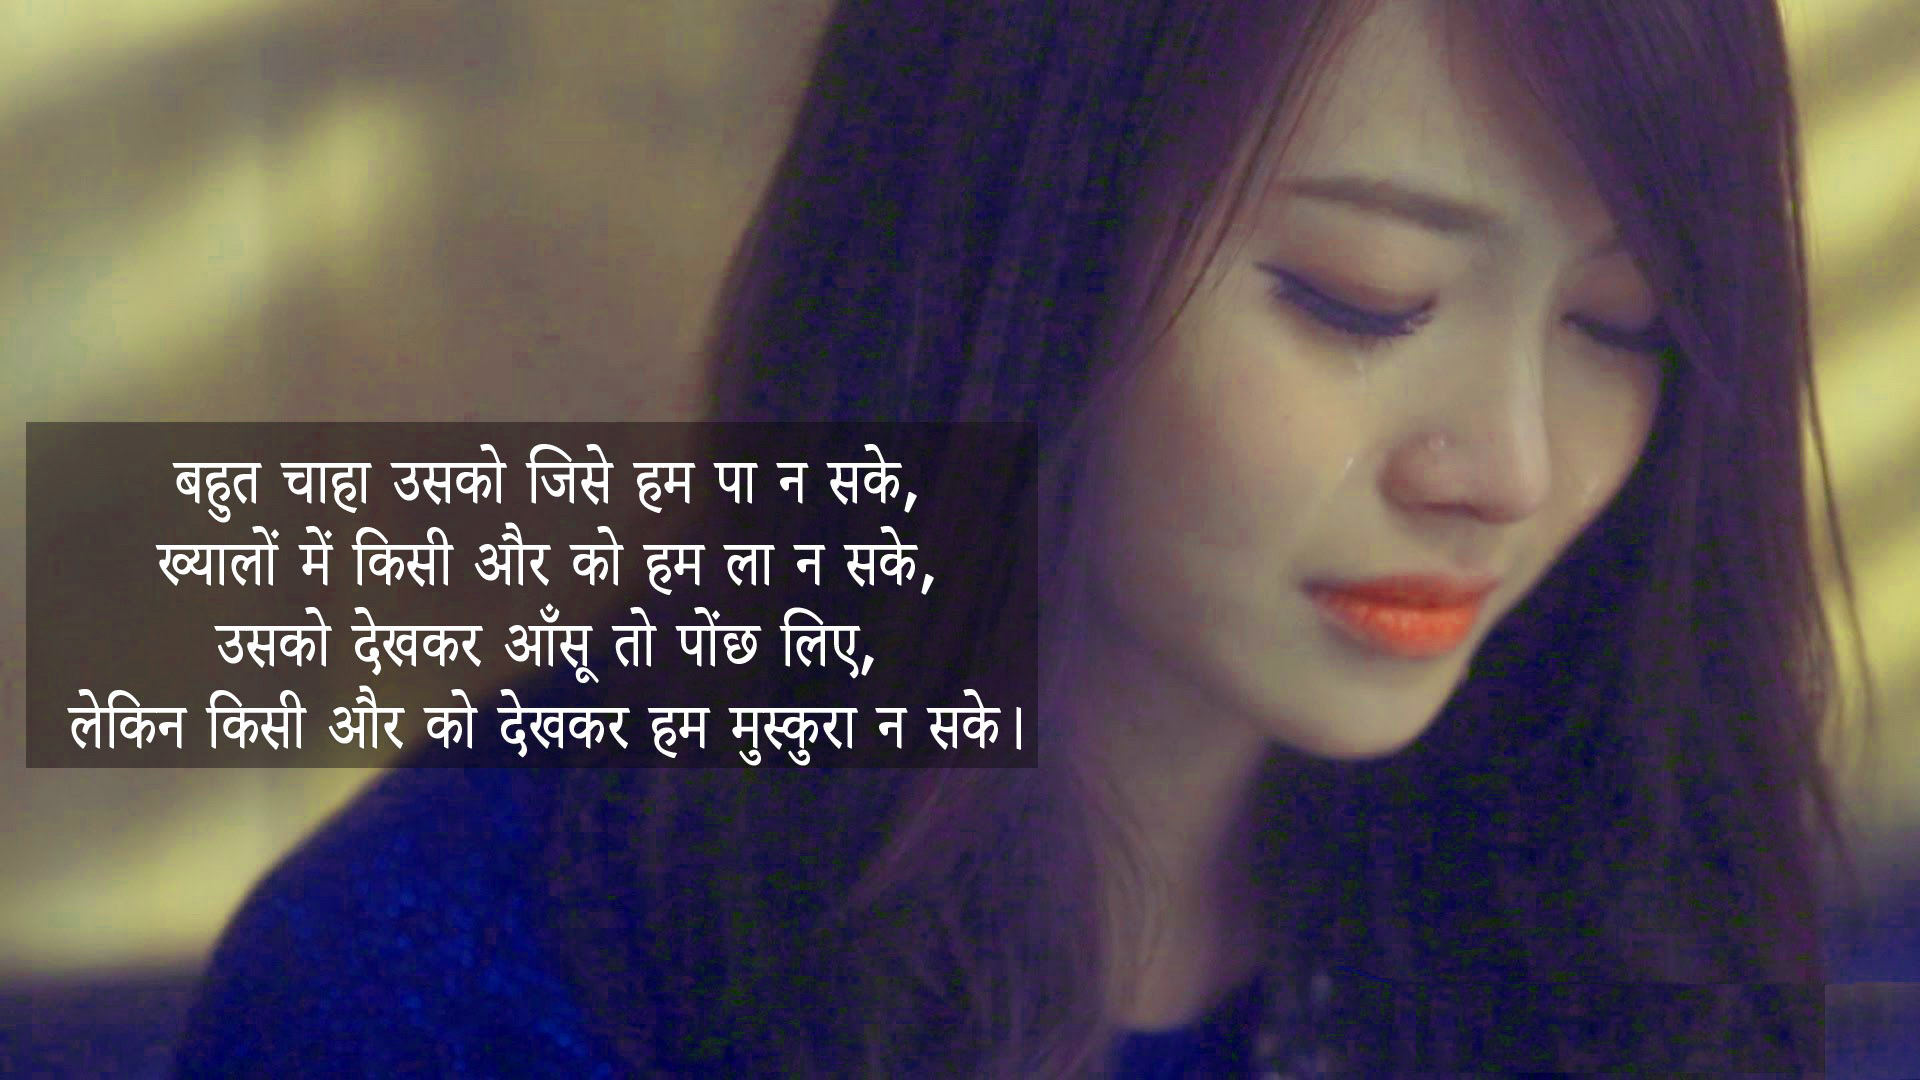 Hindi Bewafa Shayari Images Wallpaper Pictures HD Download